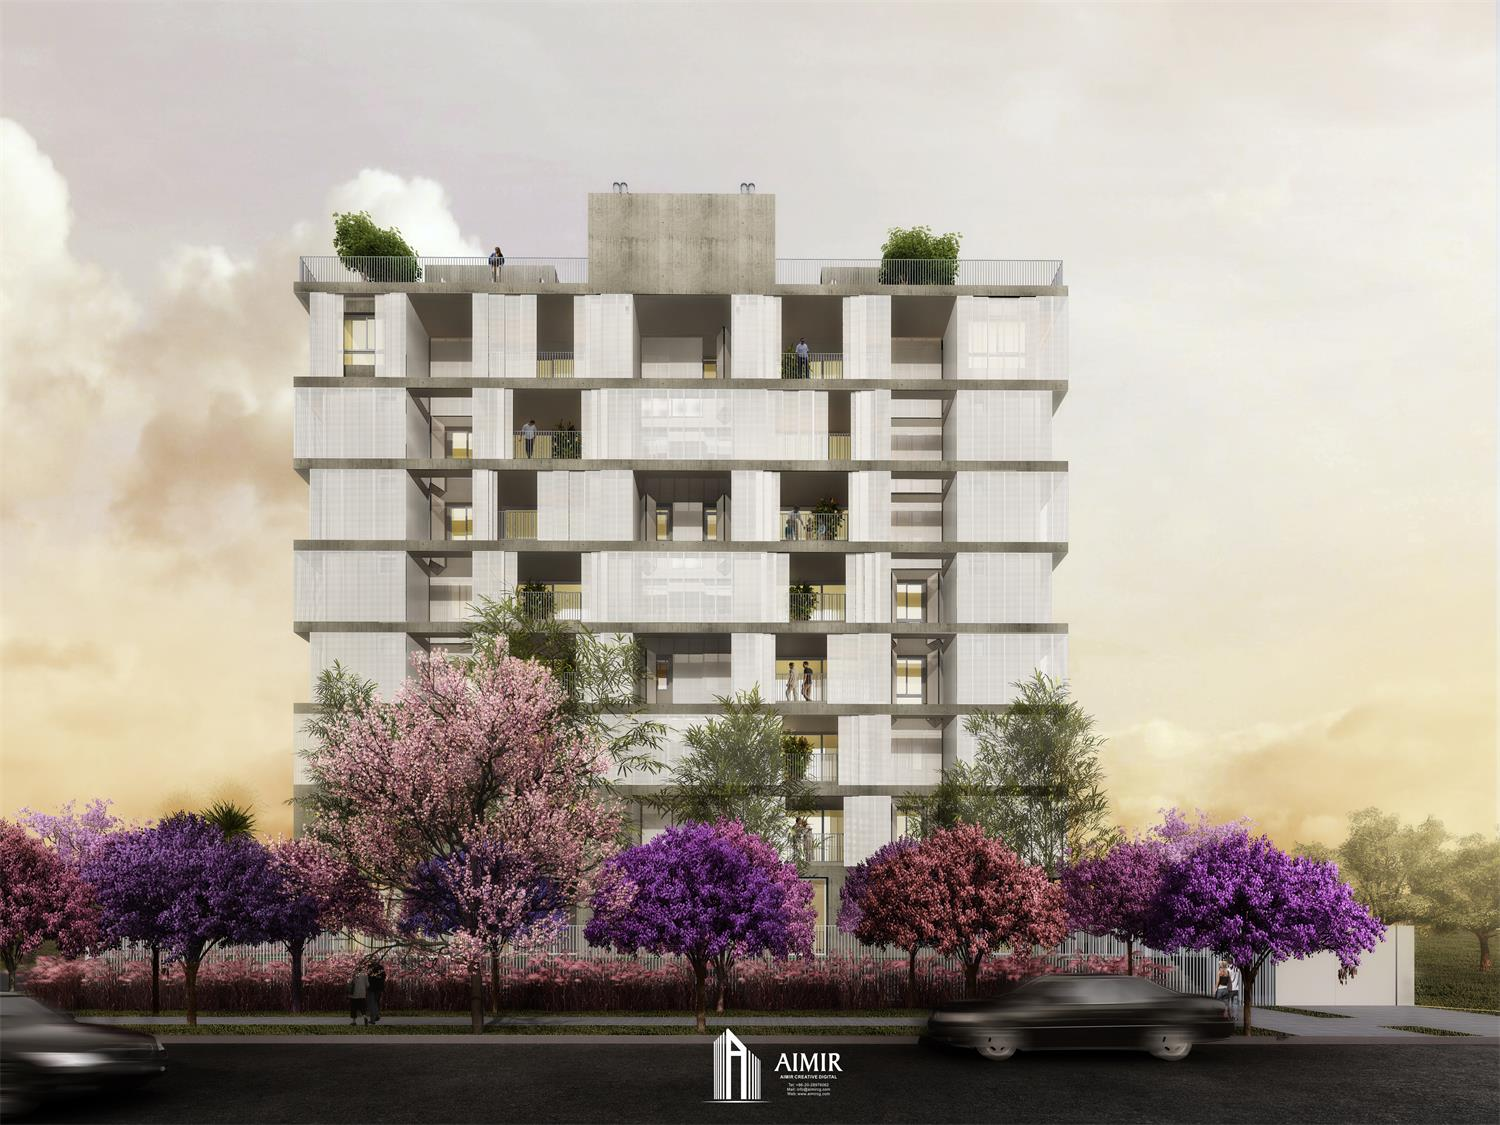 Architectural 3D Renderings of Brazil GRIS Residence: A Garden-style Apartment Building